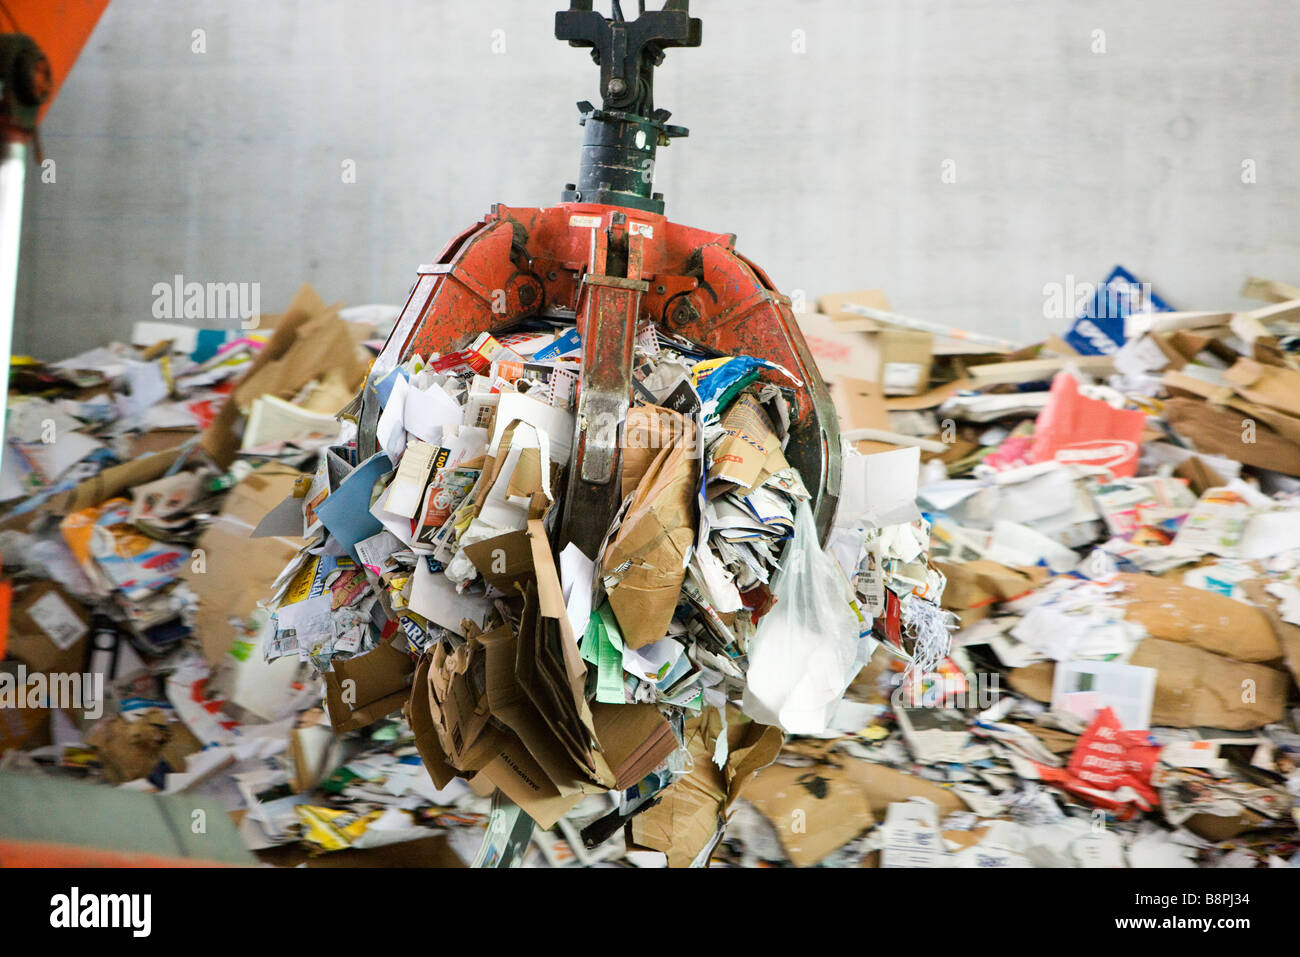 Waste paper being processed in recycling center Stock Photo